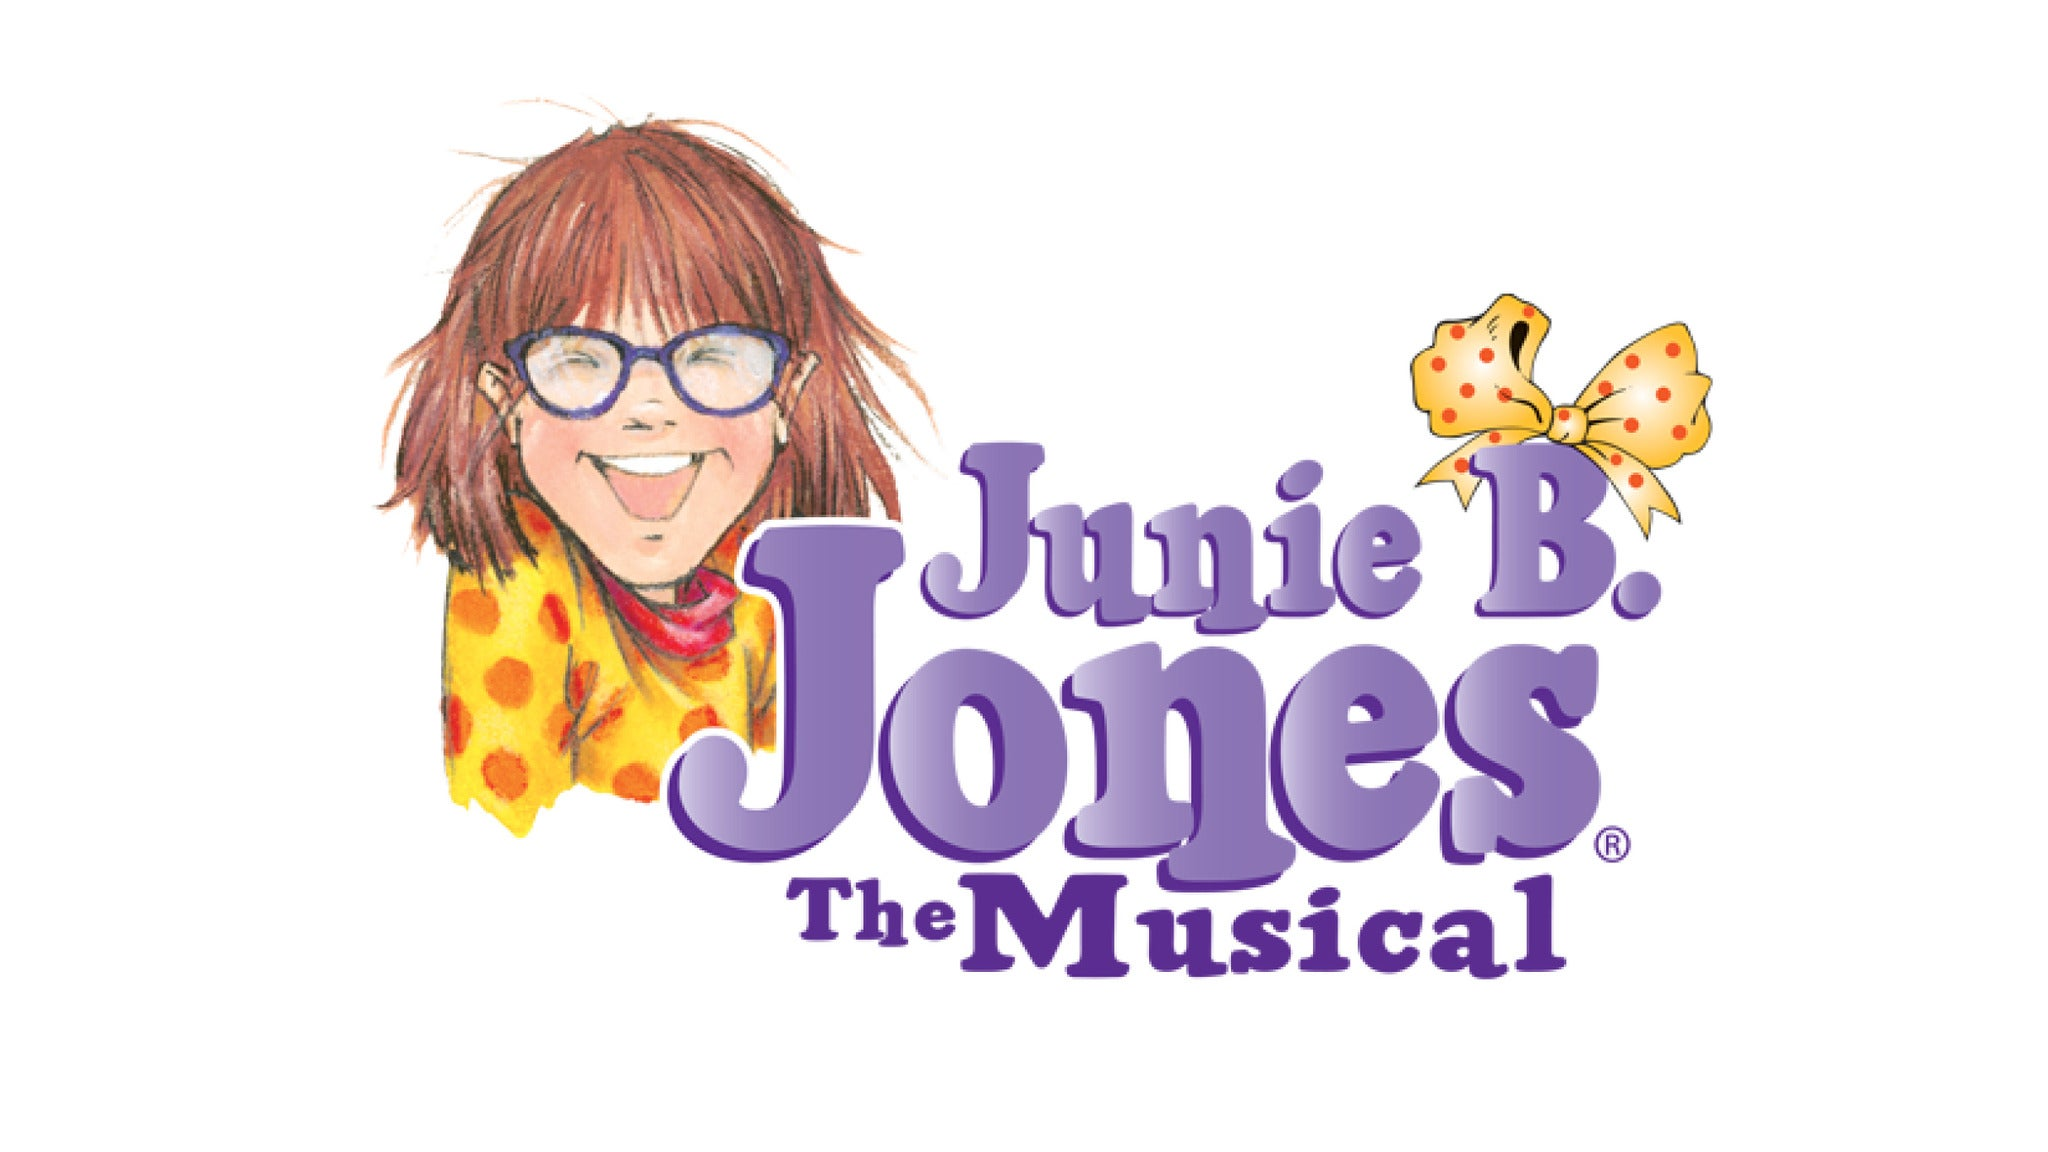 Junie B. Jones at City Theatre